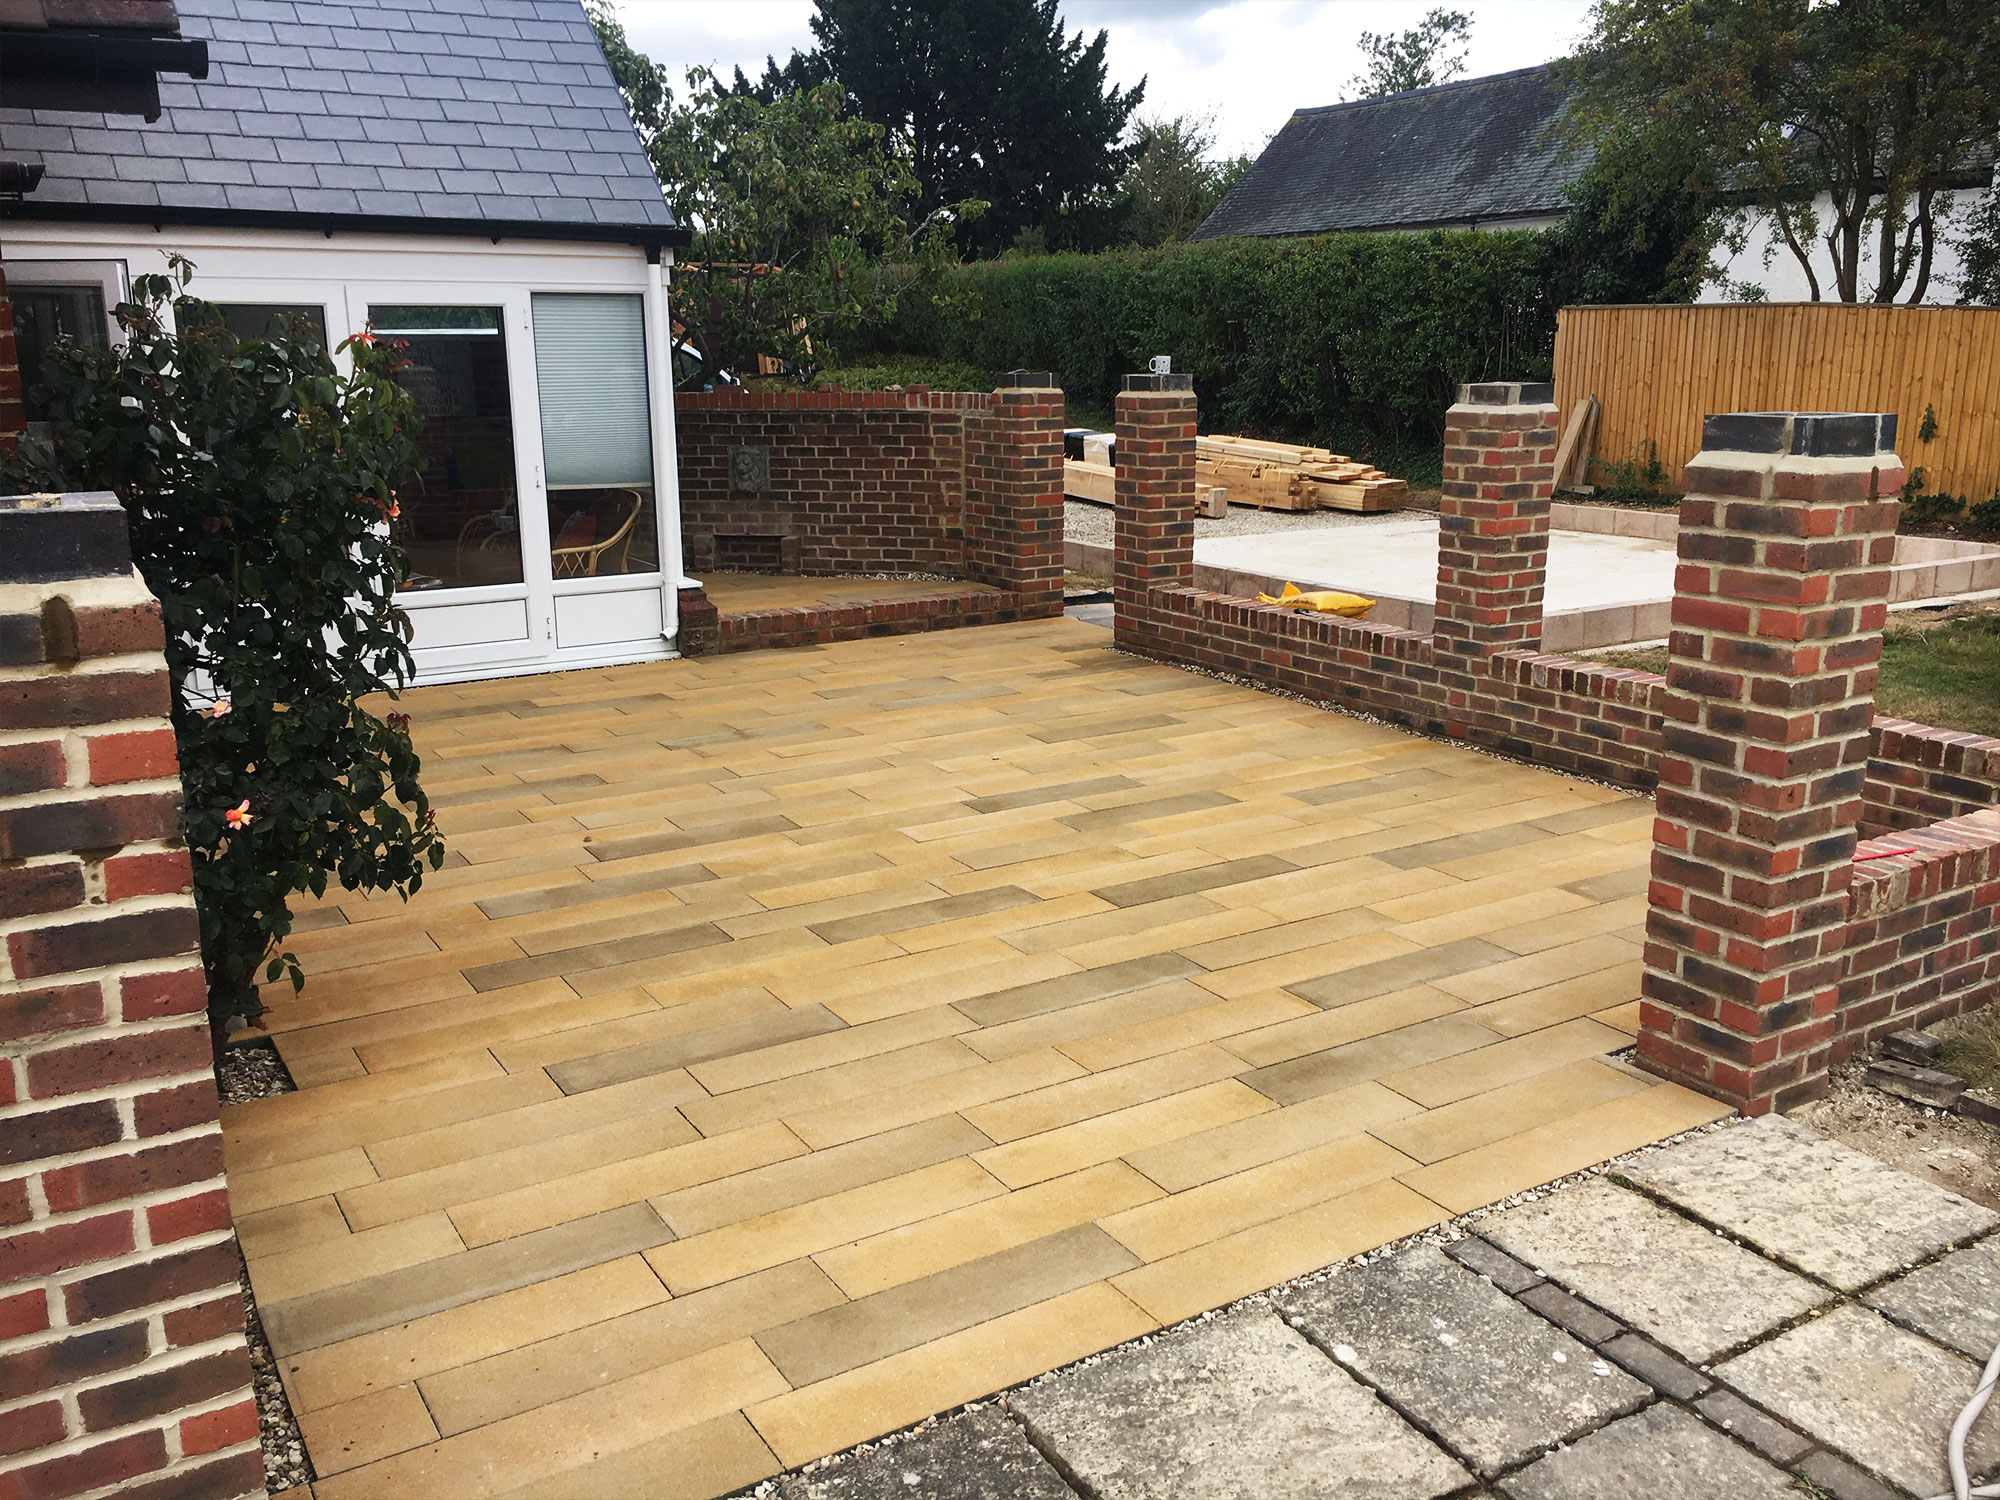 Landscaping - Paving